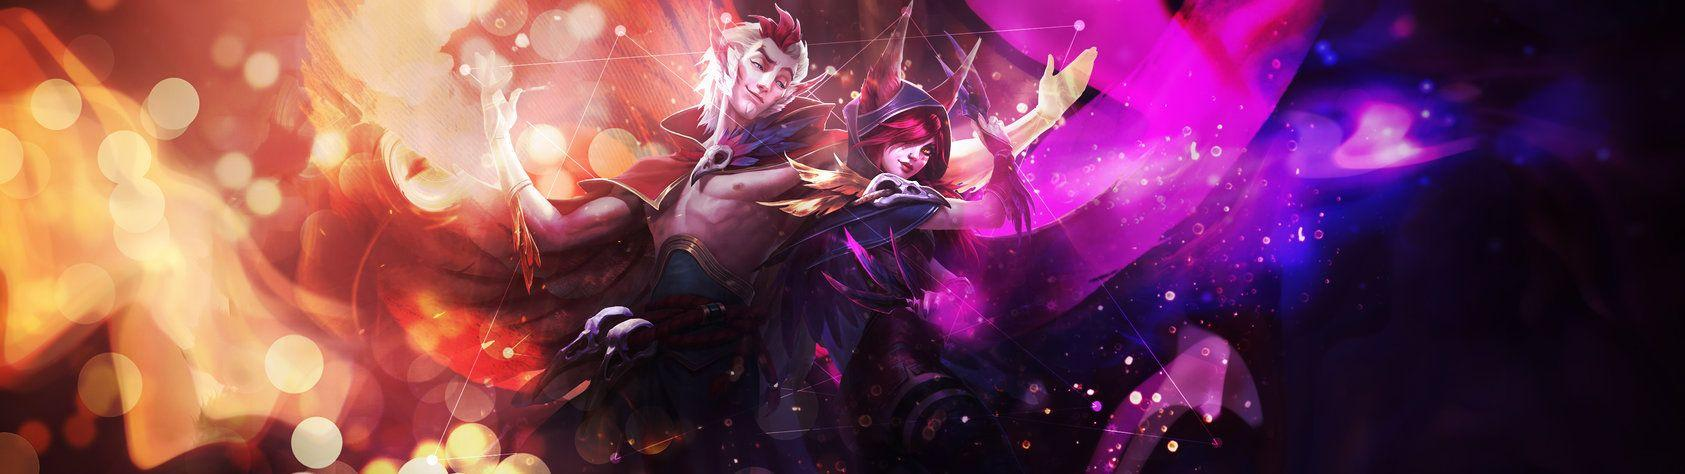 Decided to show my Rakan and Xayah wallpaper (3840x1080) | league ...